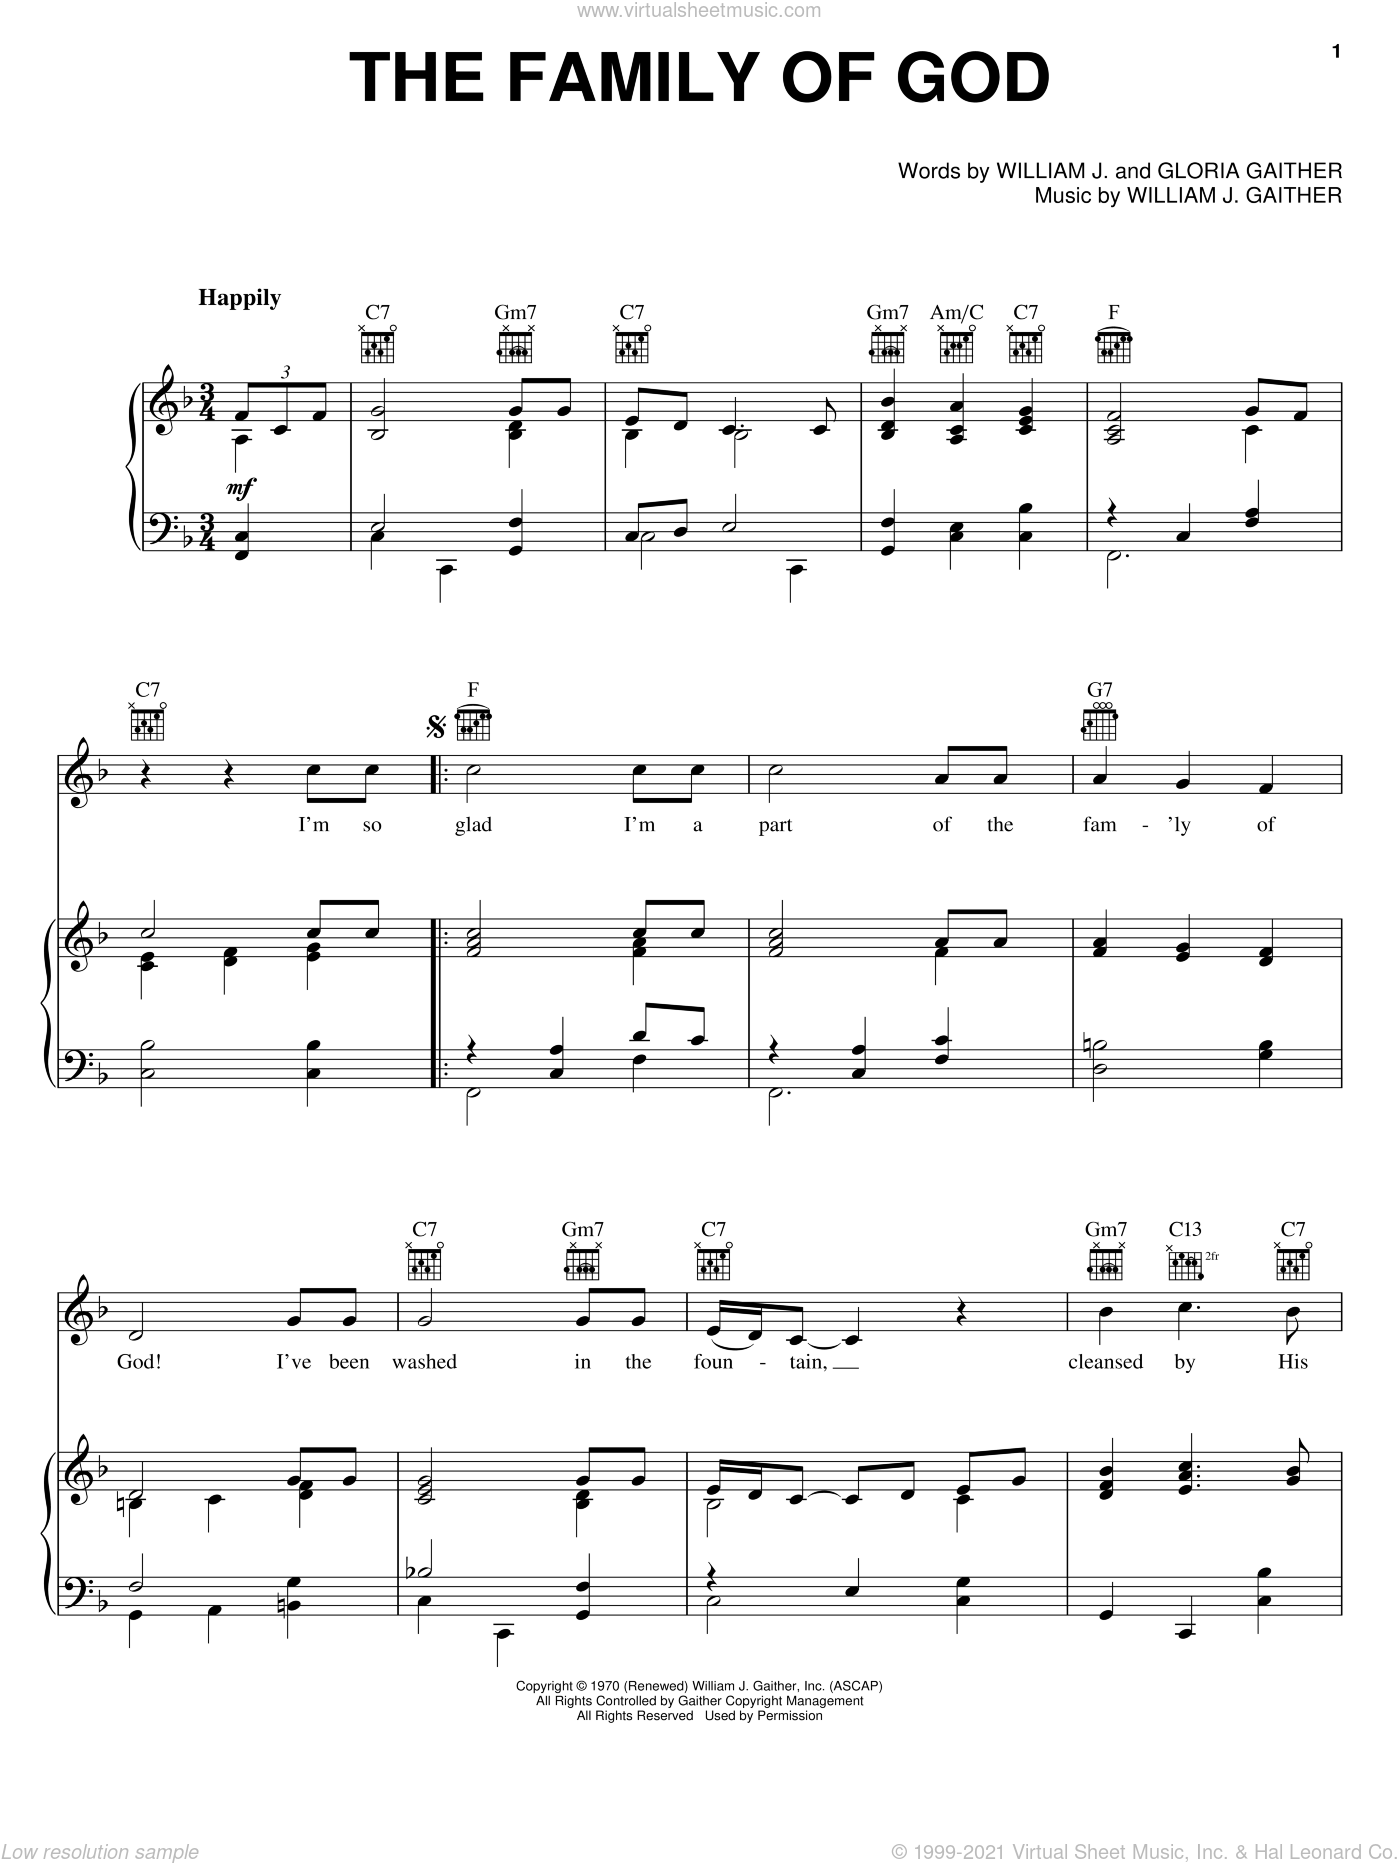 The Family Of God sheet music for voice, piano or guitar by Bill & Gloria Gaither, Bill Gaither, Gloria Gaither and William J. Gaither, intermediate